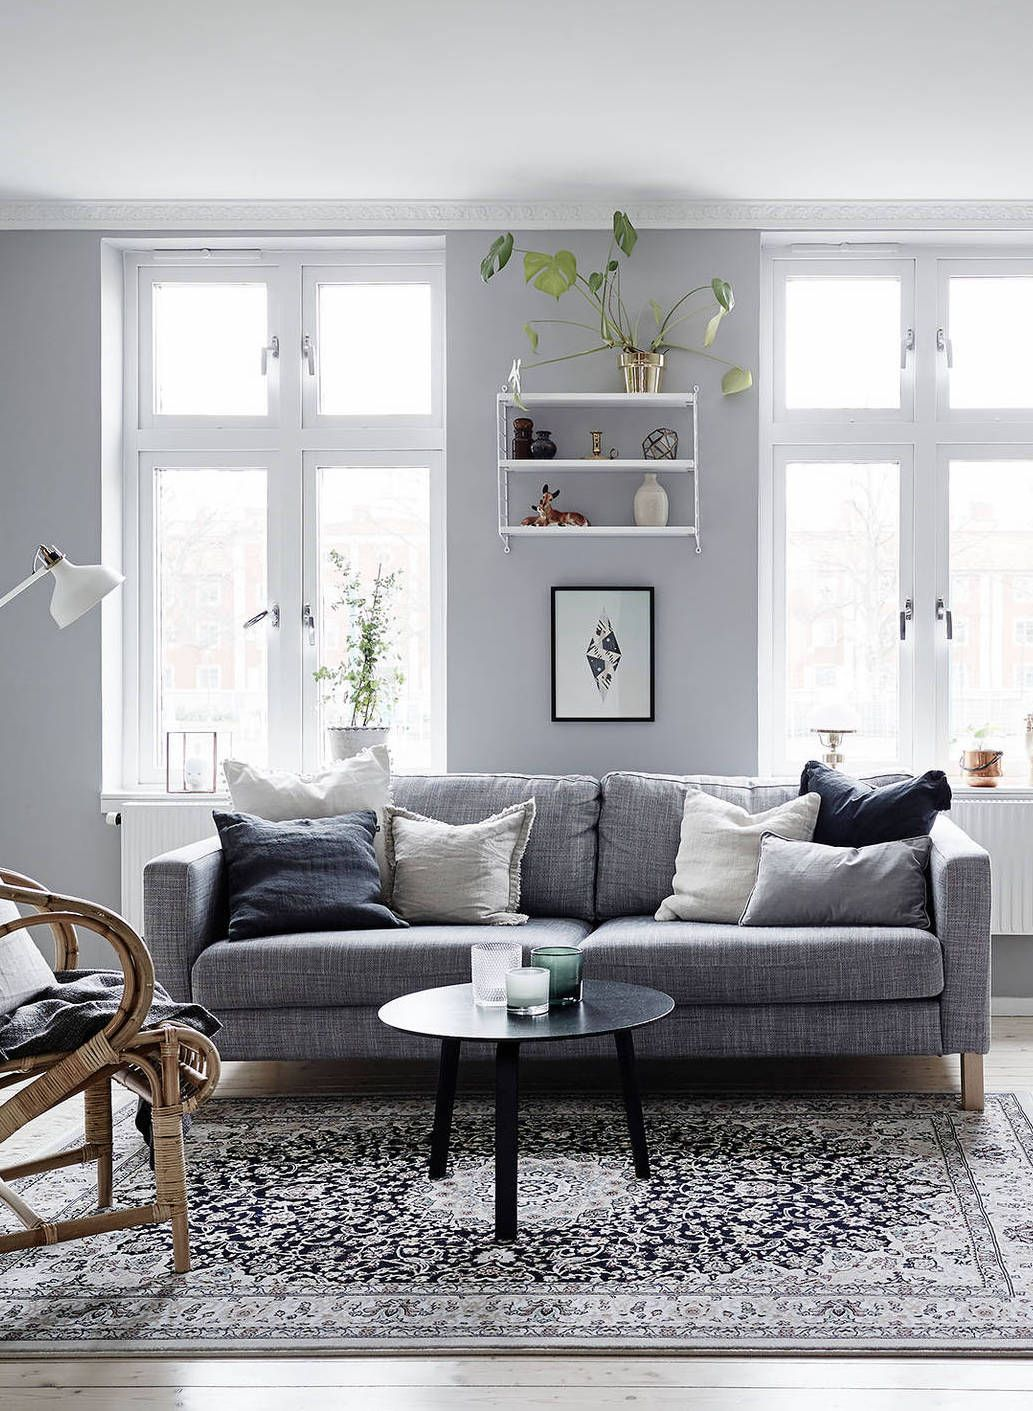 Best Soft Grey Home Grey Couch Decor Living Room Grey Grey 400 x 300